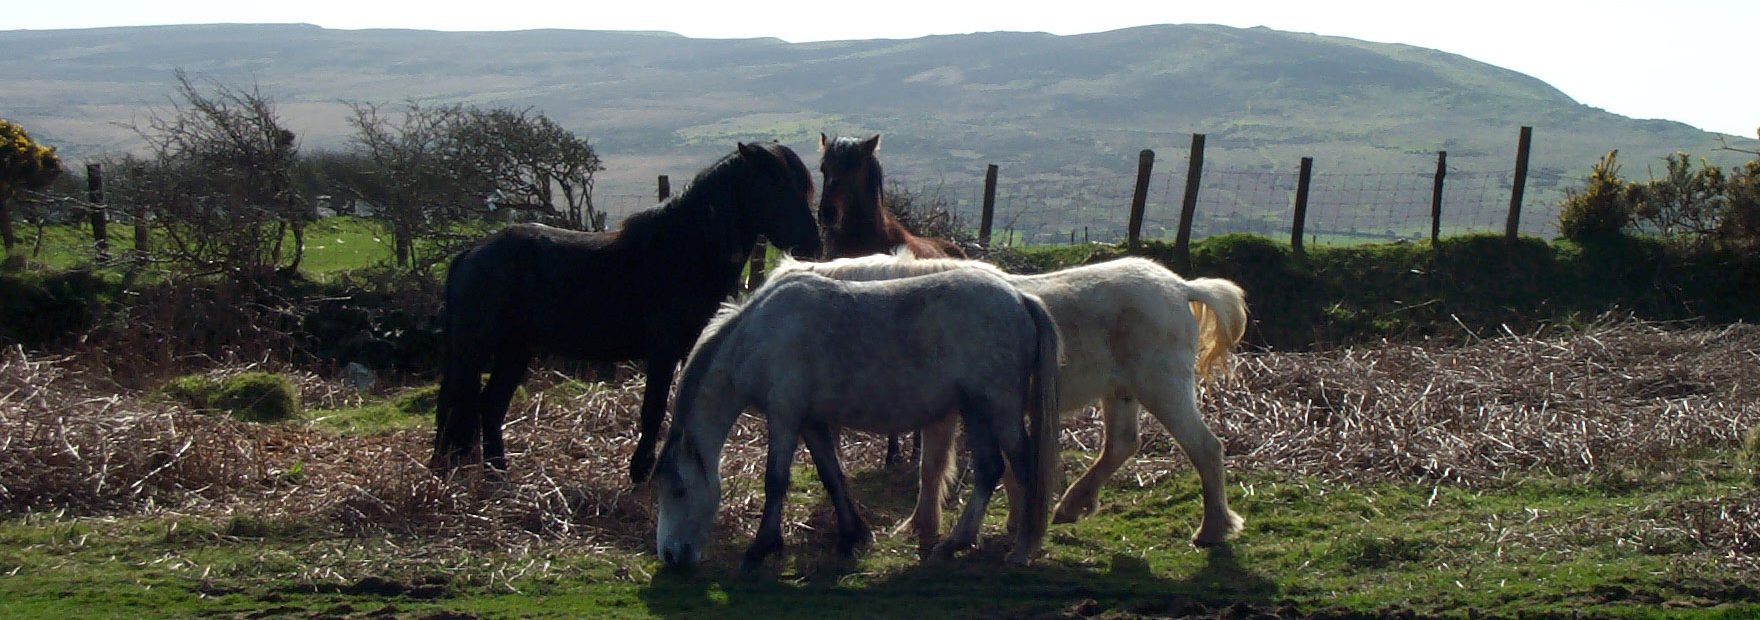 Tanky-horses-Gower-commons-grazing-animals